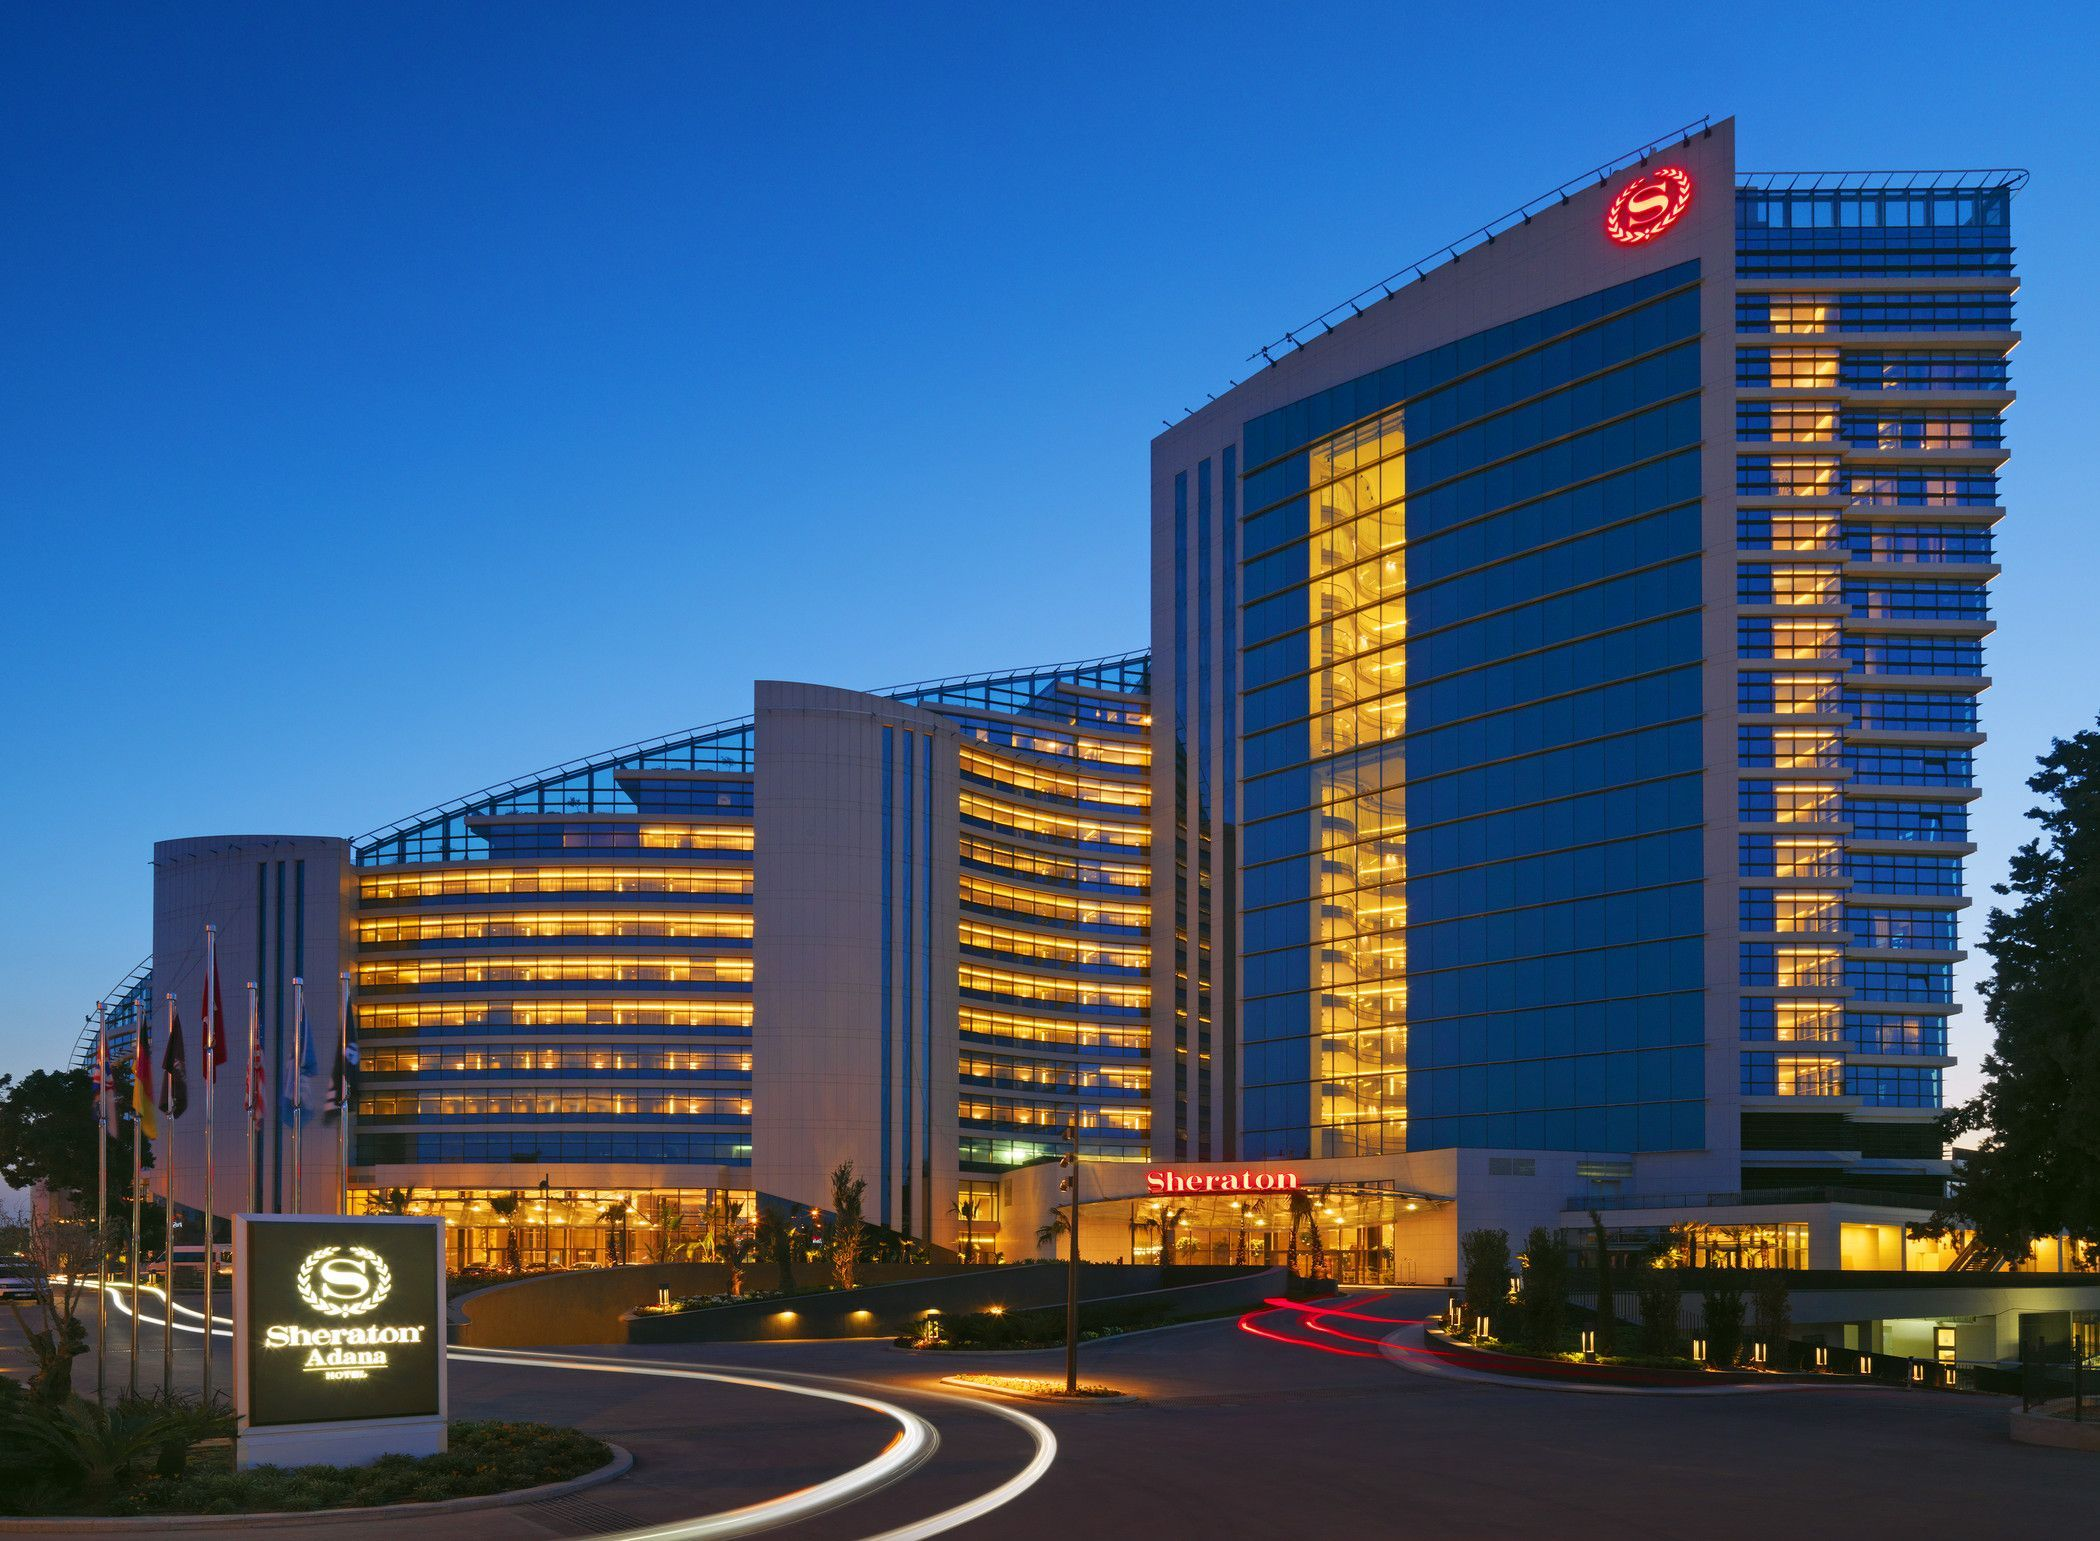 Starwood Hotels Resorts Reaches Ten In Turkey With The New Sheraton Adana Hotel Business Wire